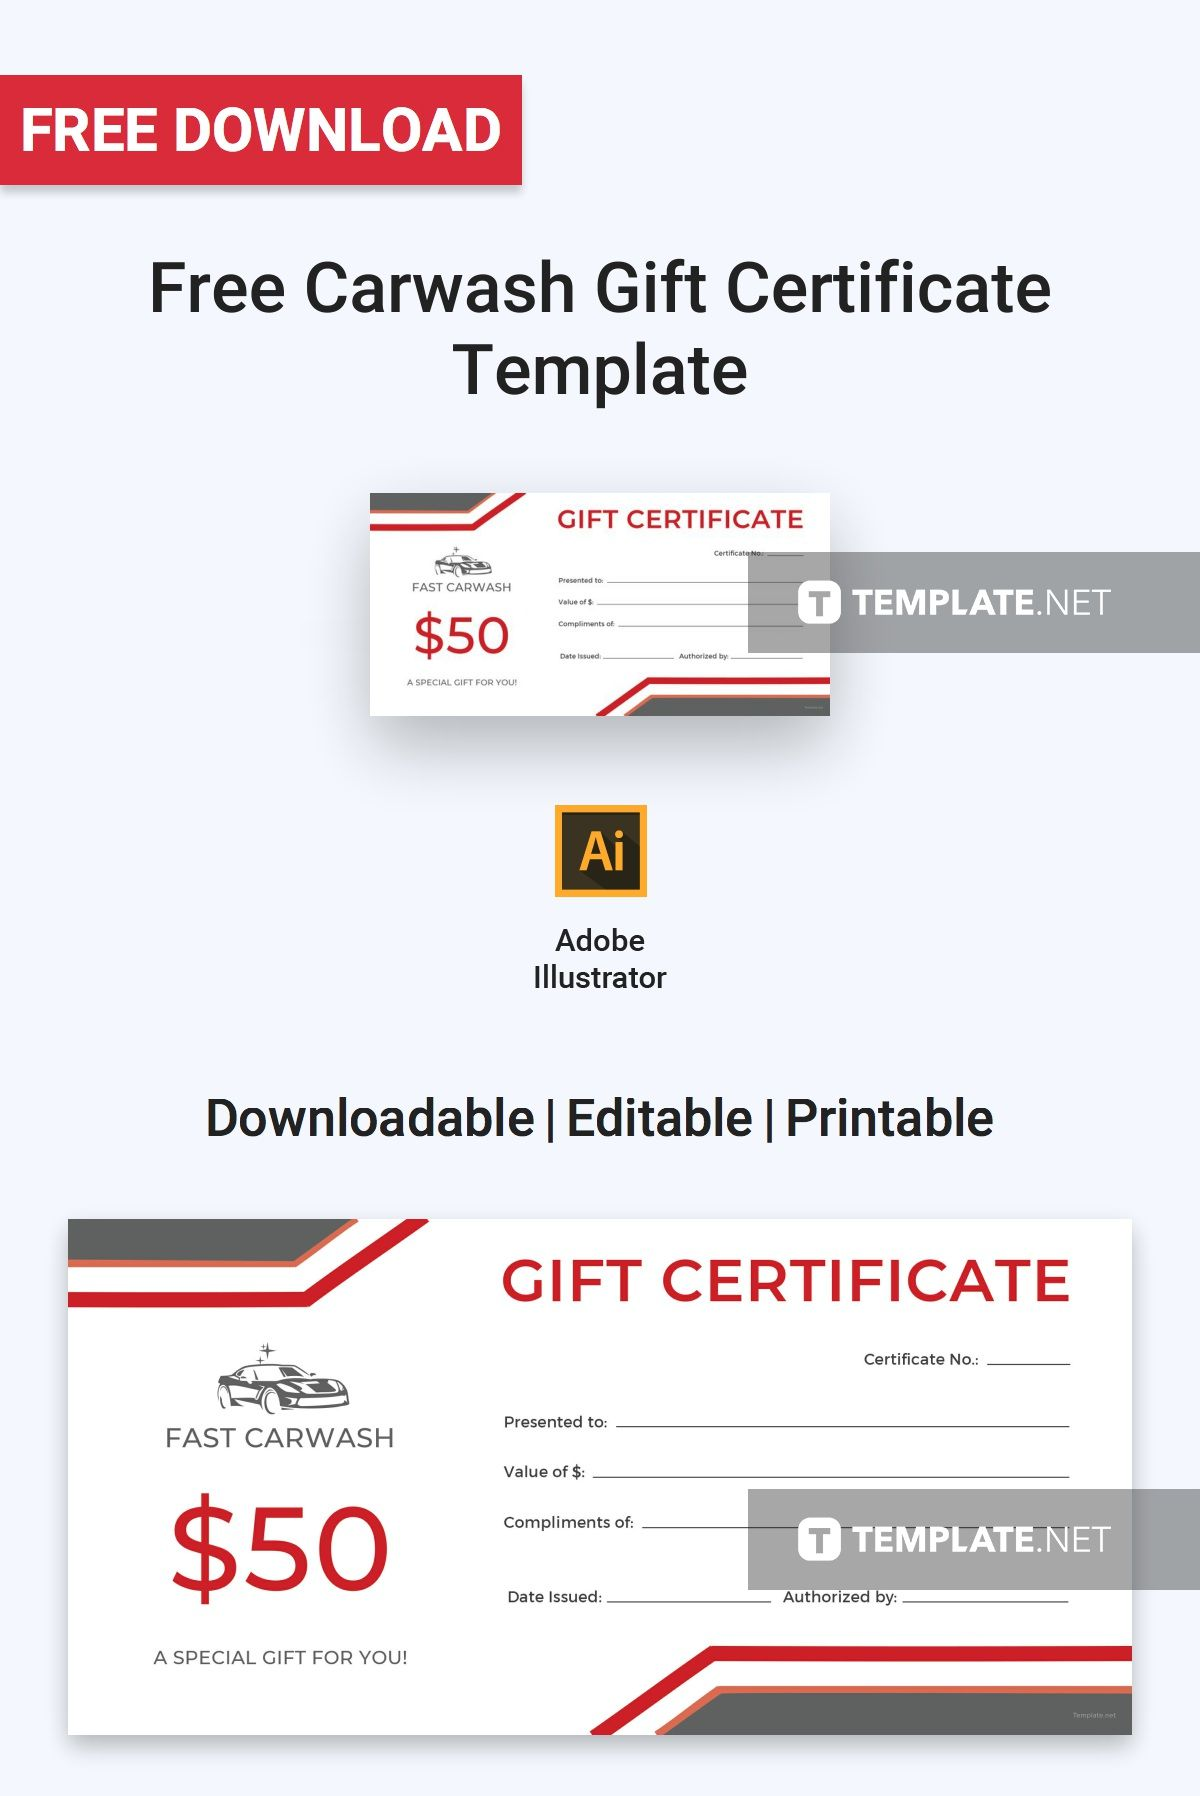 Free Carwash Gift Certificate Gift Certificate Template